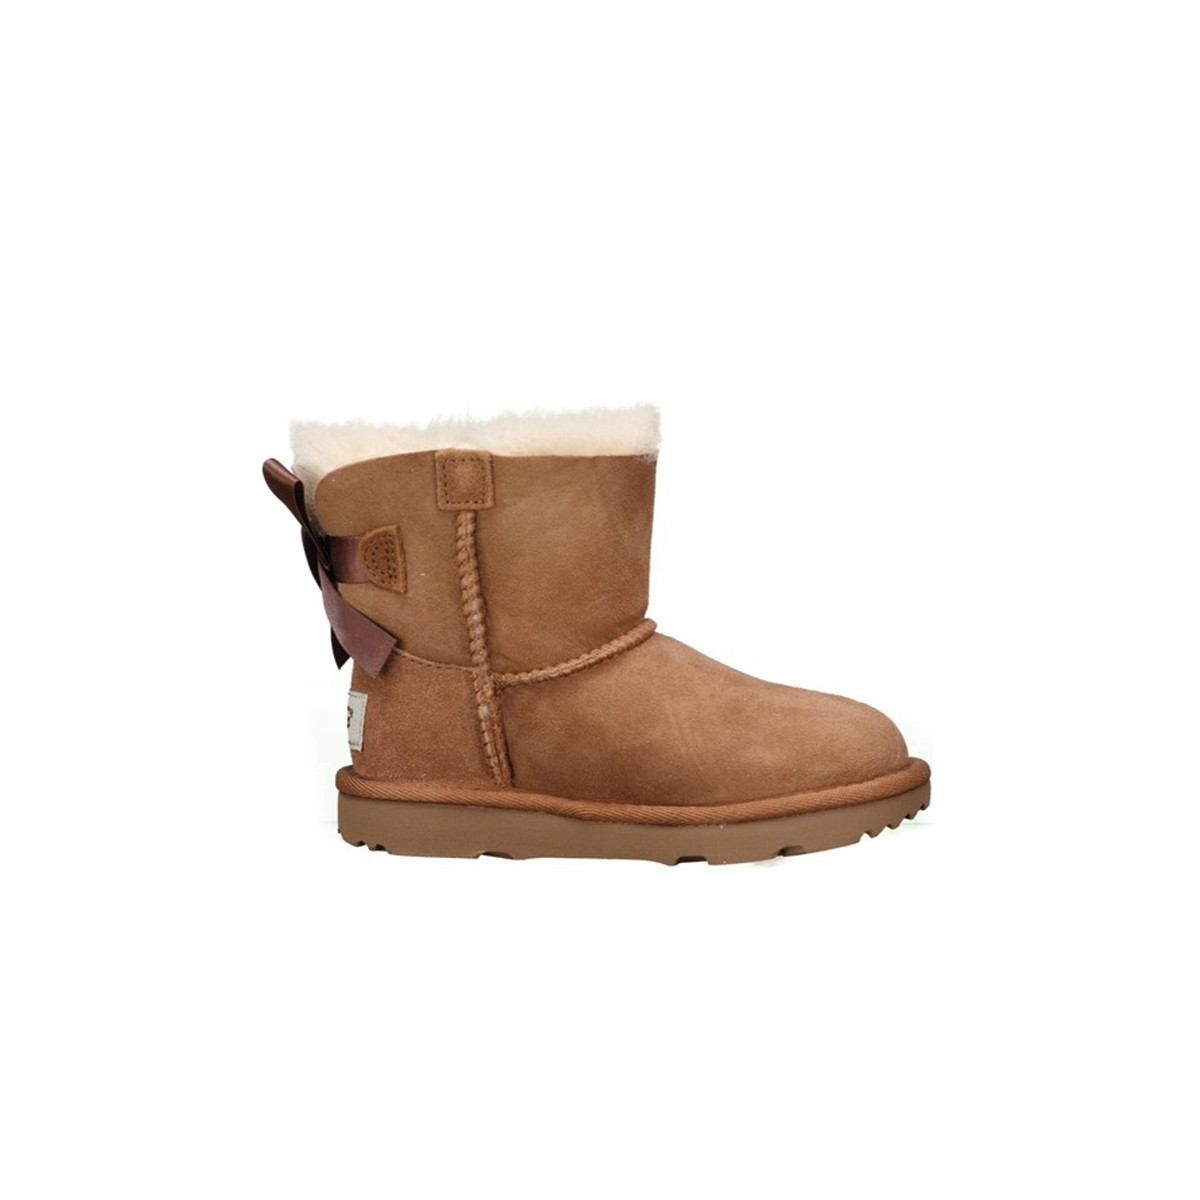 Botts Ugg Mini Bailey bow chesnut